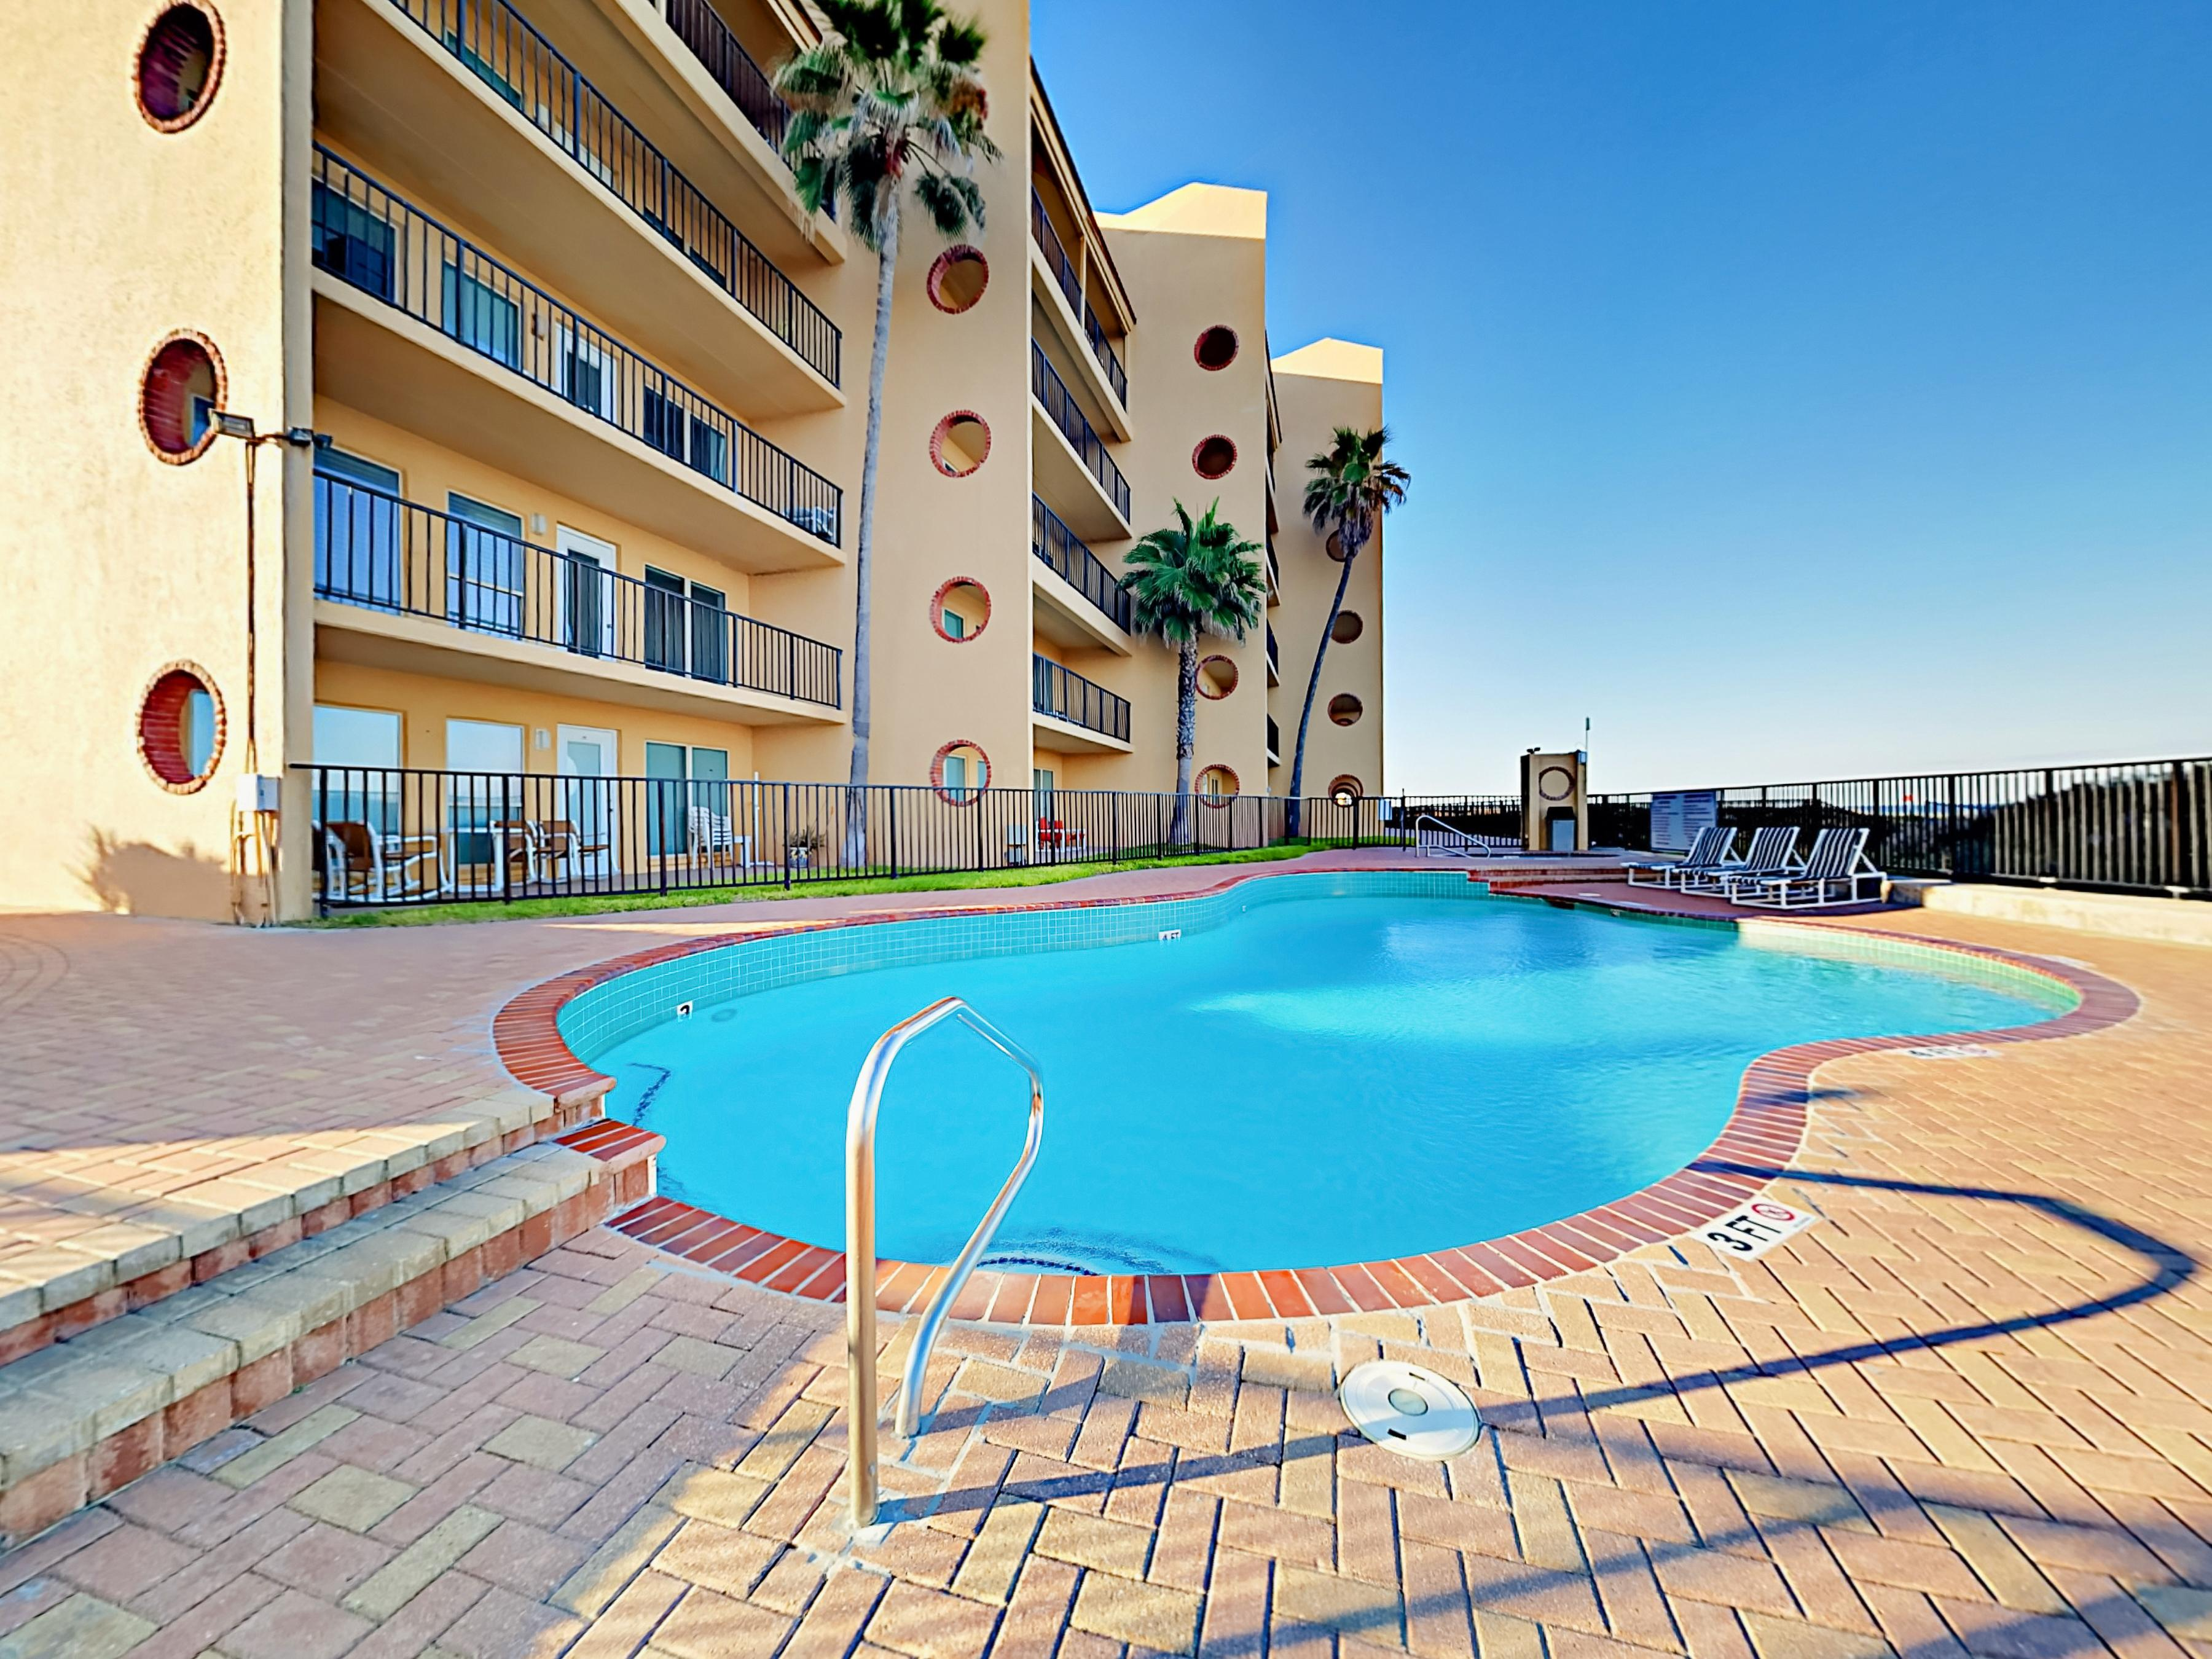 The condo complex has a large pool and relaxing hot tub overlooking the water.